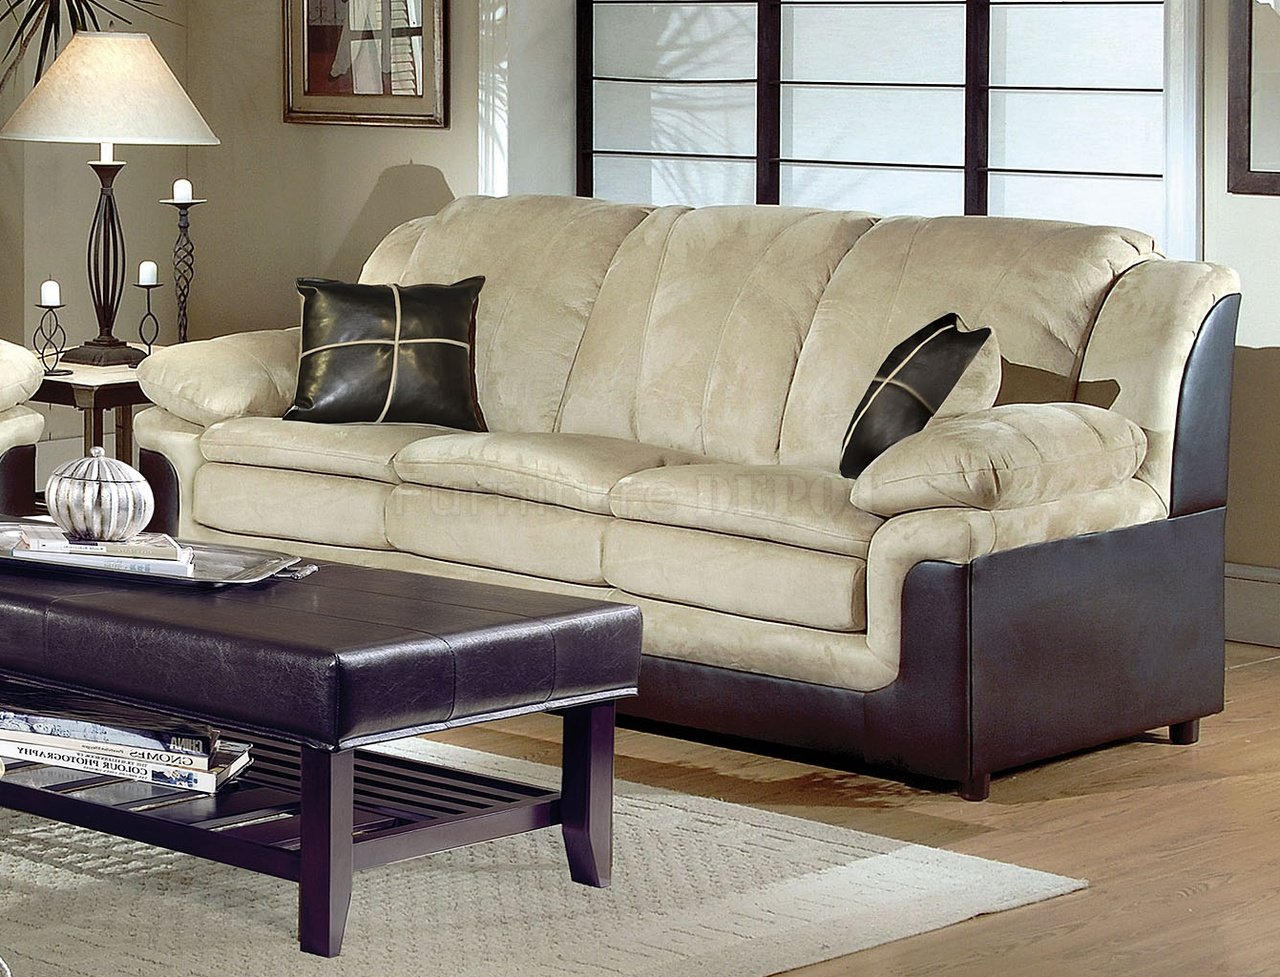 living room furnitures 10 ways to enhance the of modern living room sets 10364